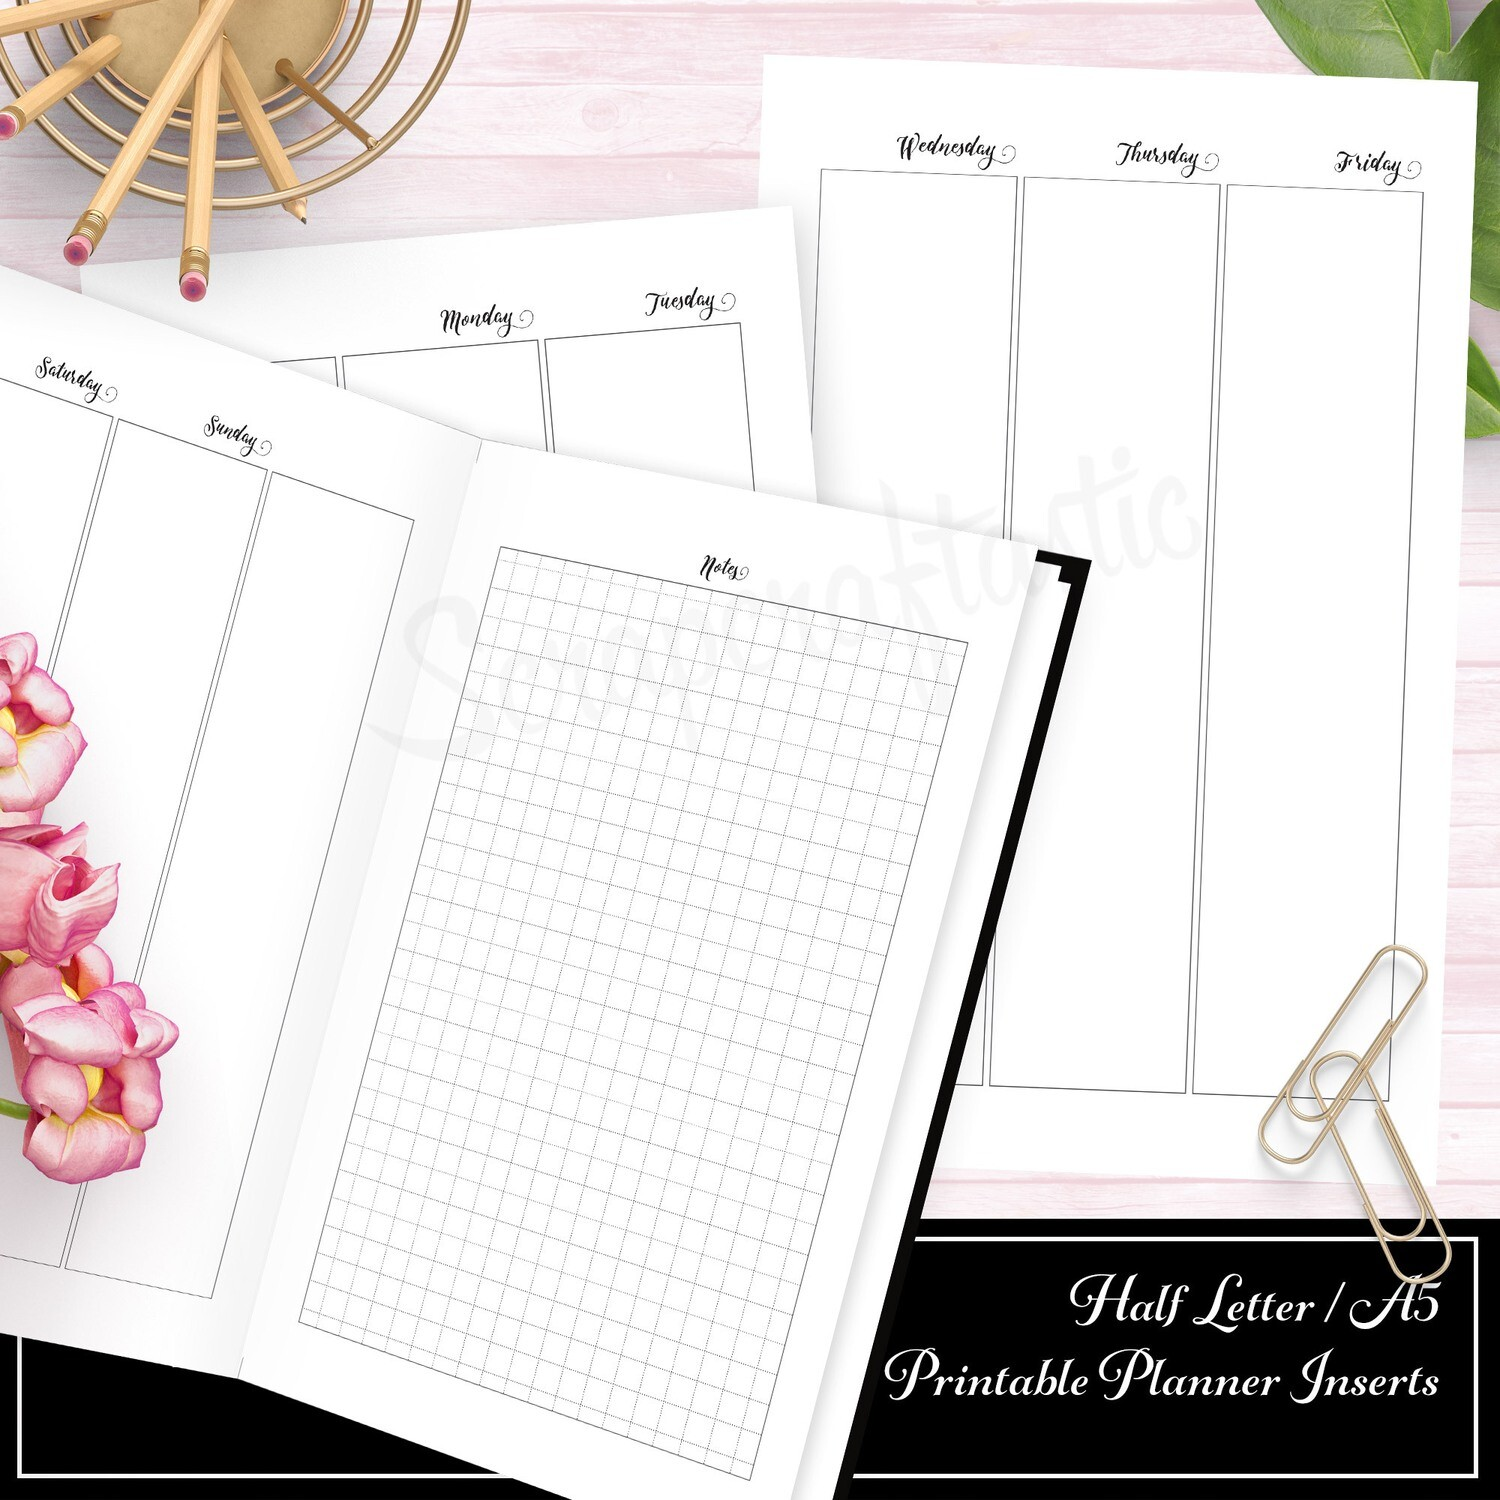 HALF LETTER A5 RINGS/DISC - Deluxe Week on Four Pages (WO4P) No Grid Printable Insert